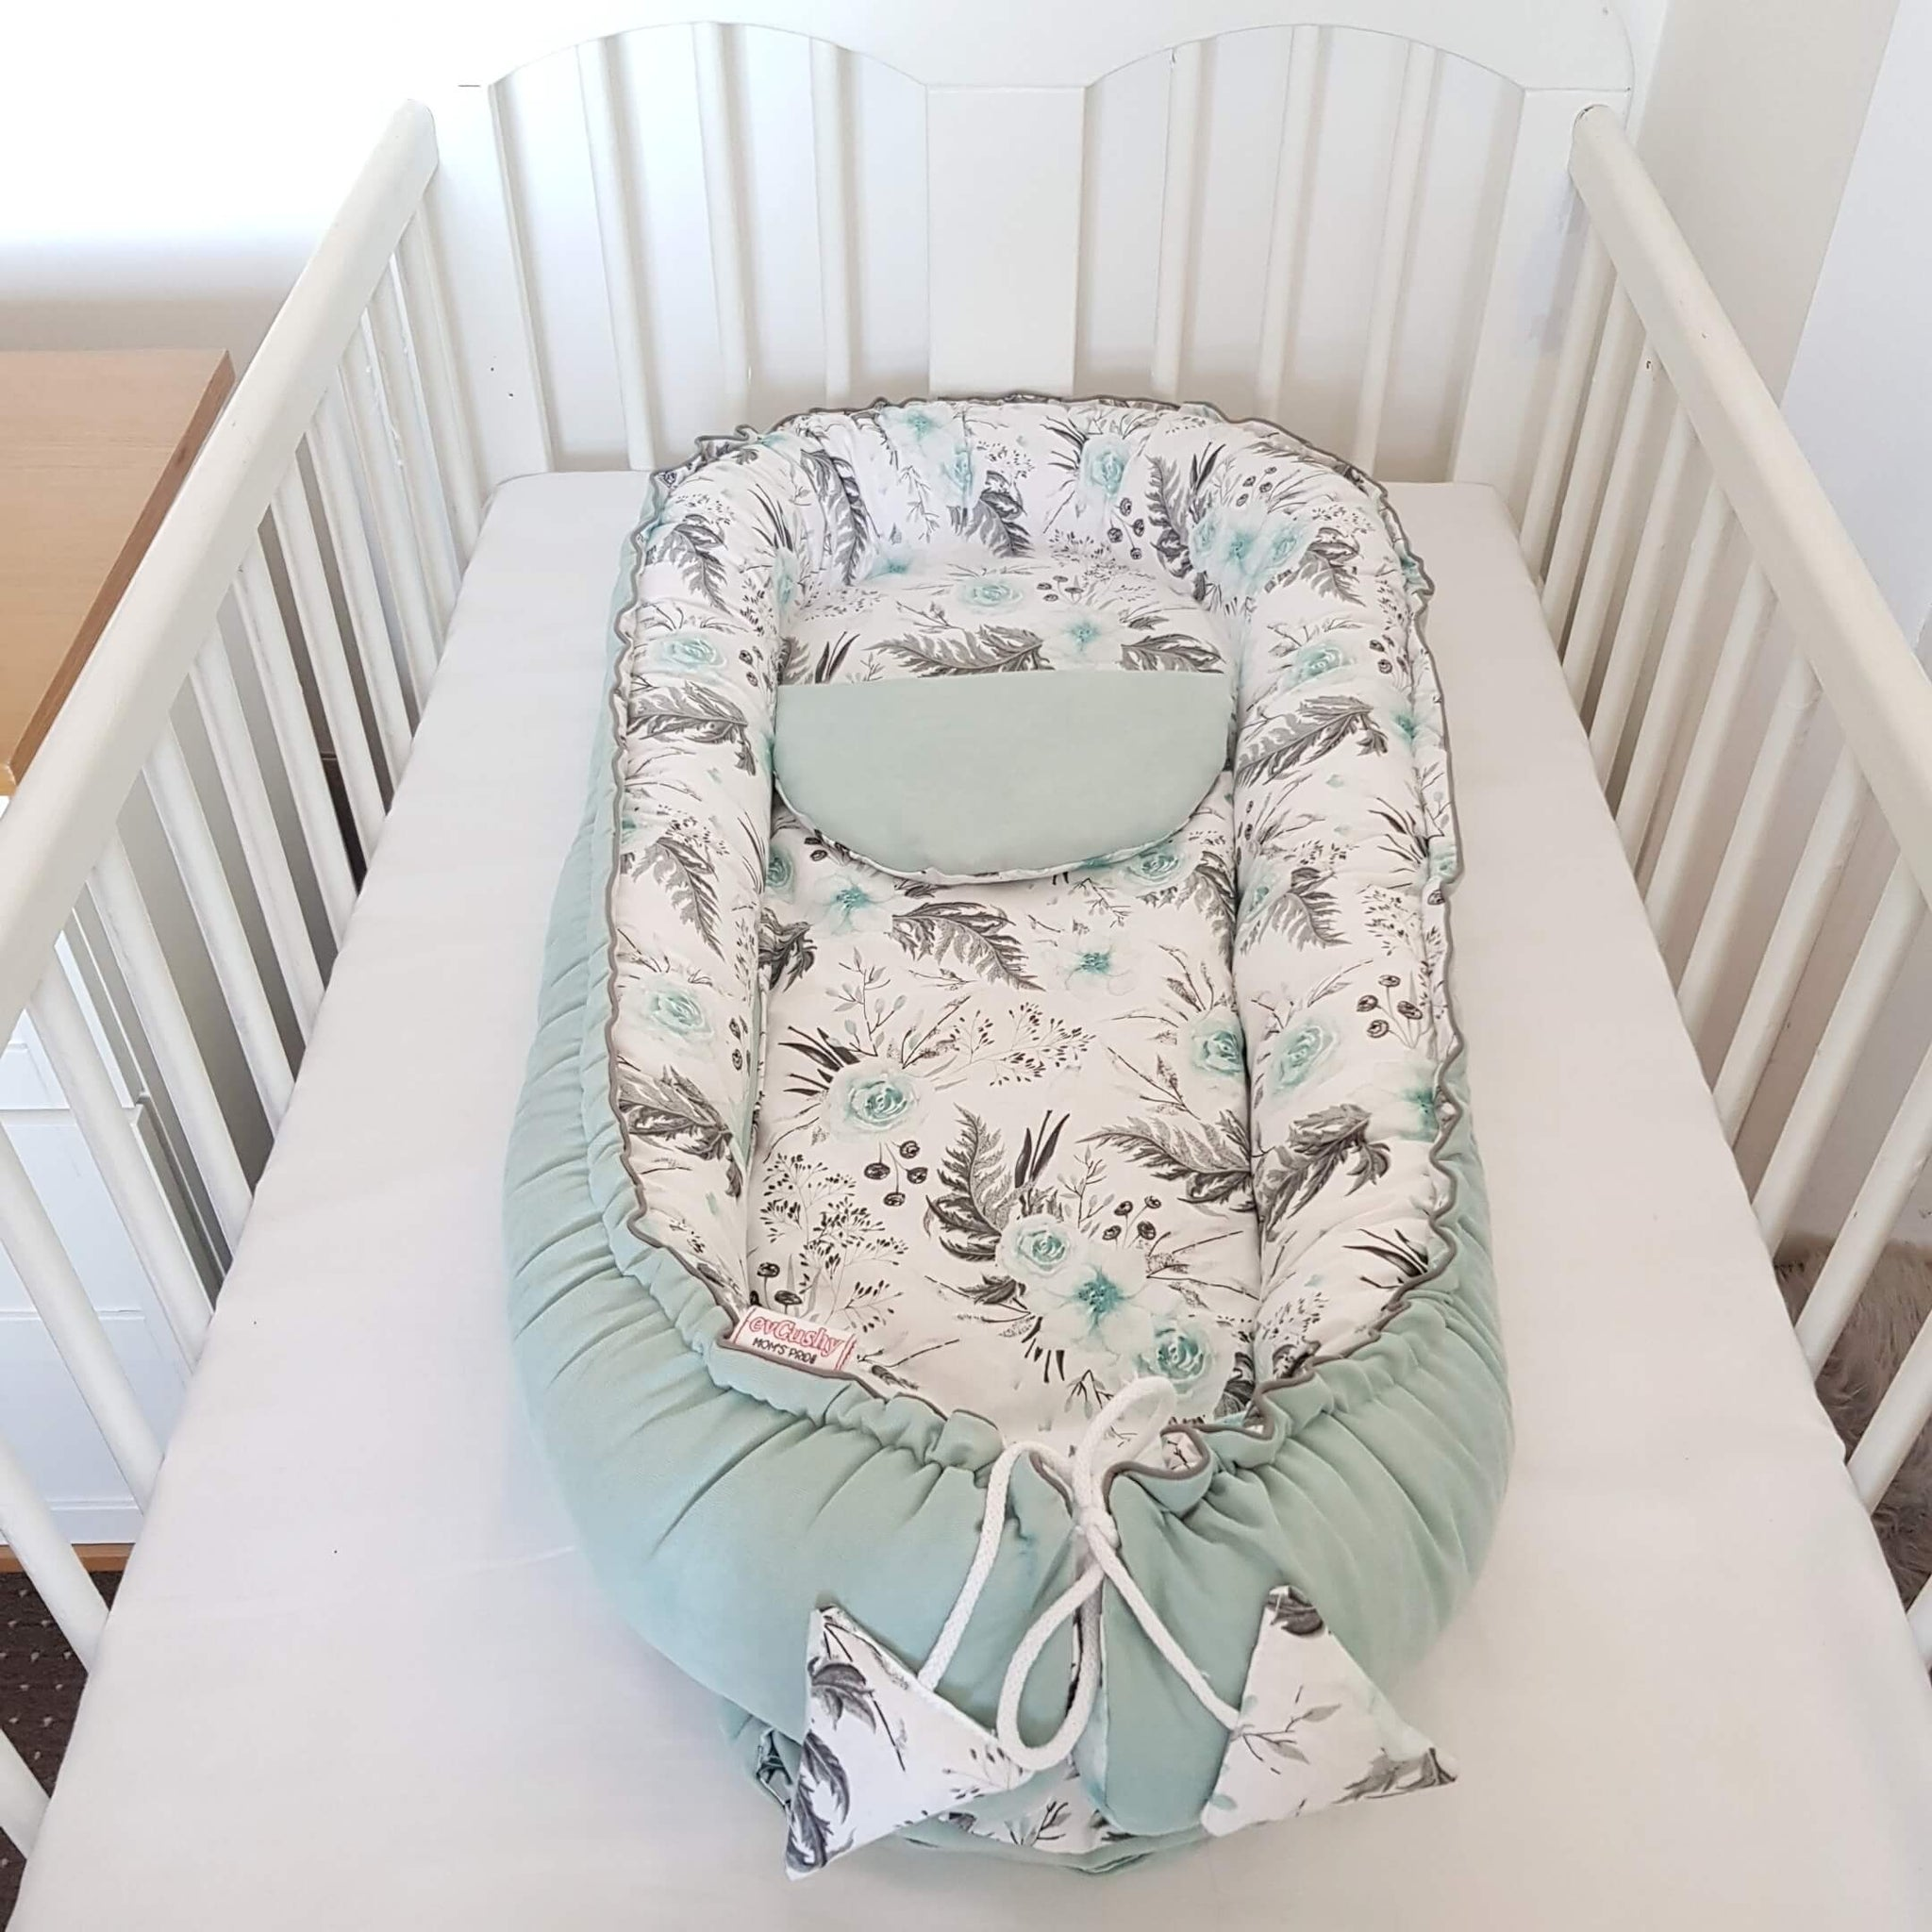 baby sleep pod XL for toddlers with insert mattress from evcushy